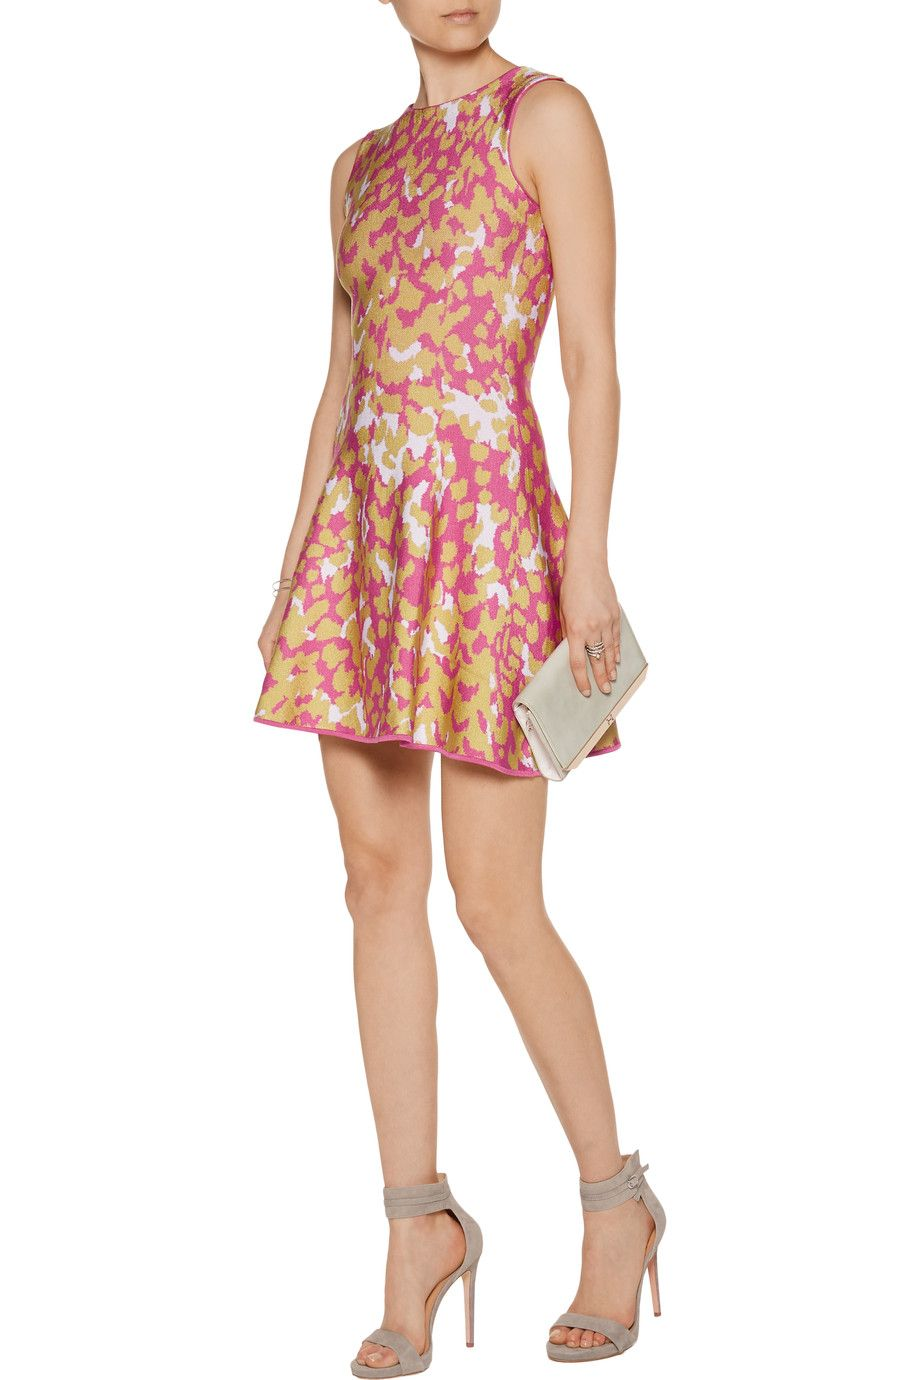 Shop on-sale Issa Marla jacquard-knit mini dress. Browse other discount designer Dresses & more on The Most Fashionable Fashion Outlet, THE OUTNET.COM